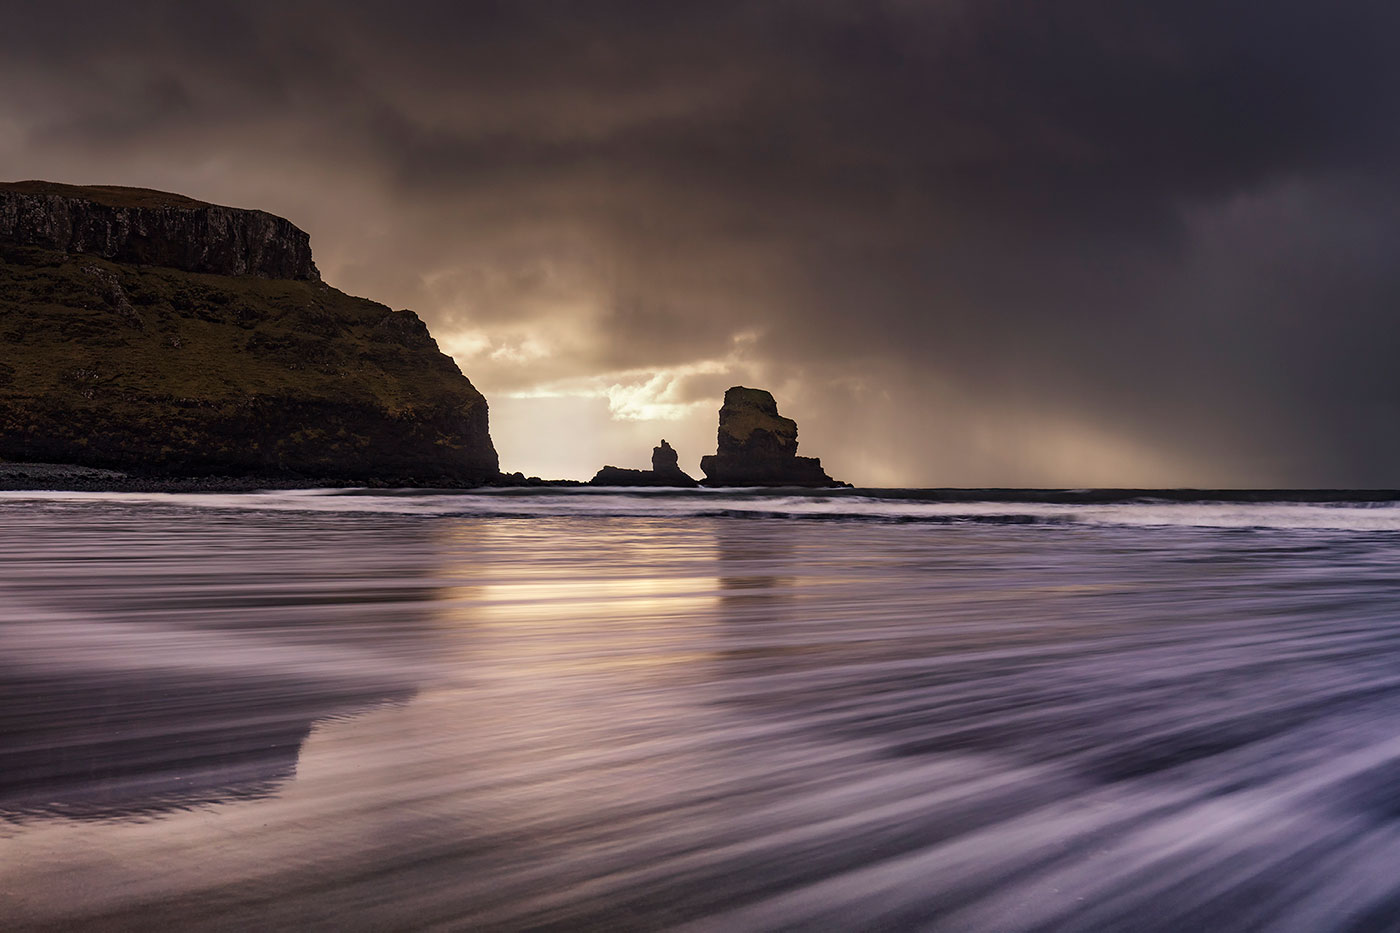 Stormy Skies, Talisker Bay, Isle of Skye, Scotland, UK